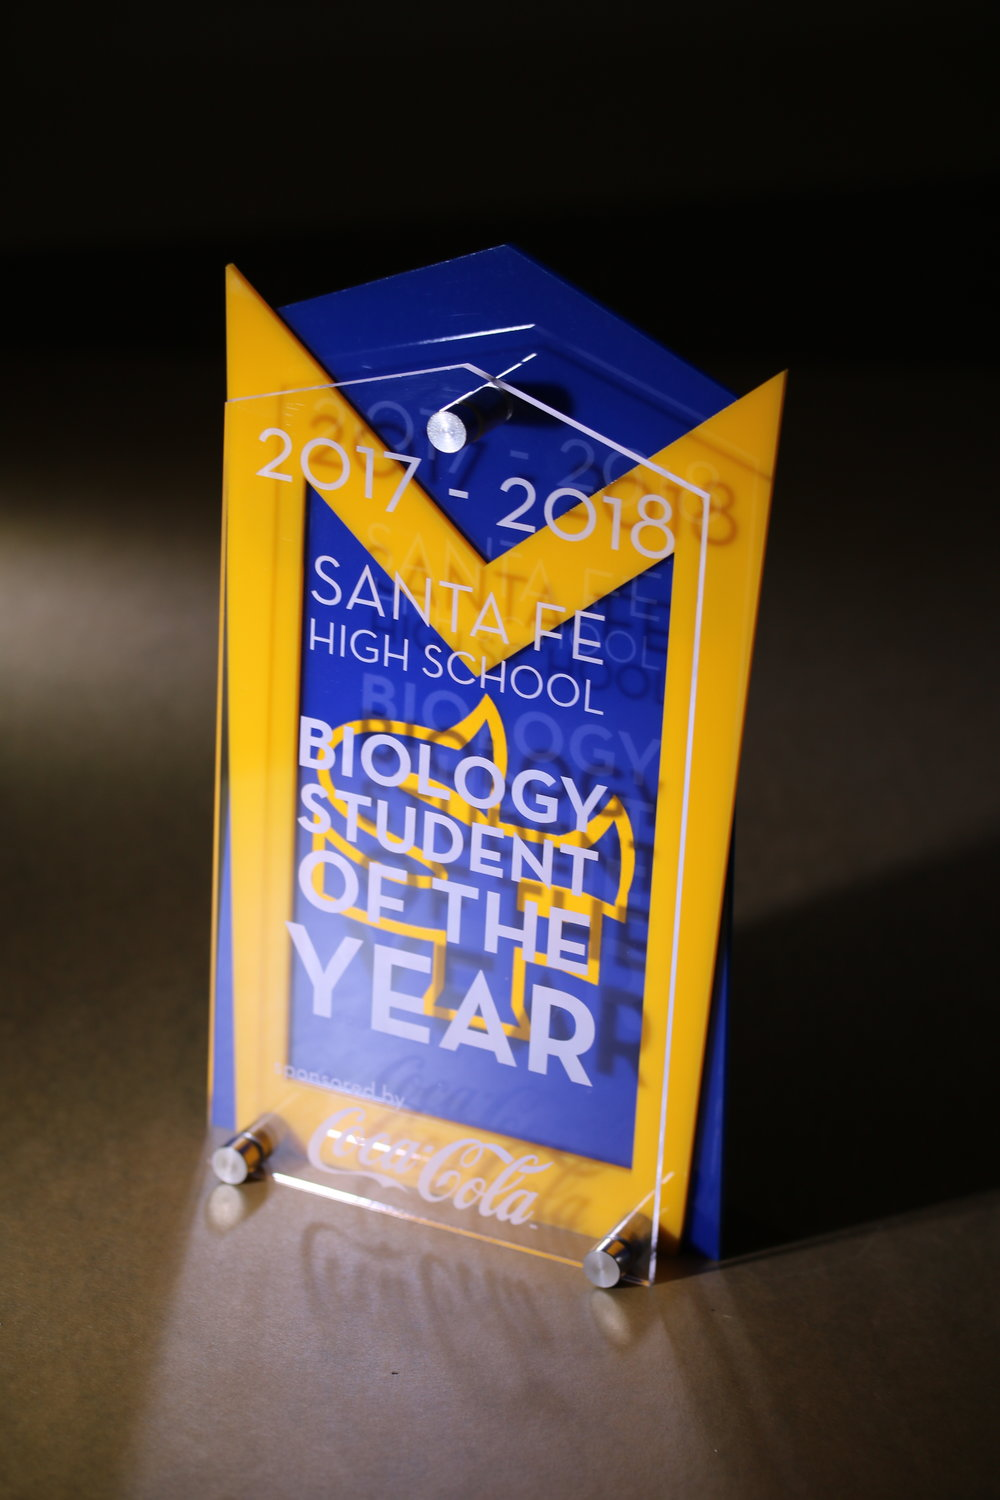 Santa Fe High School - Biology Student of the Year Award  Contact us for pricing information.